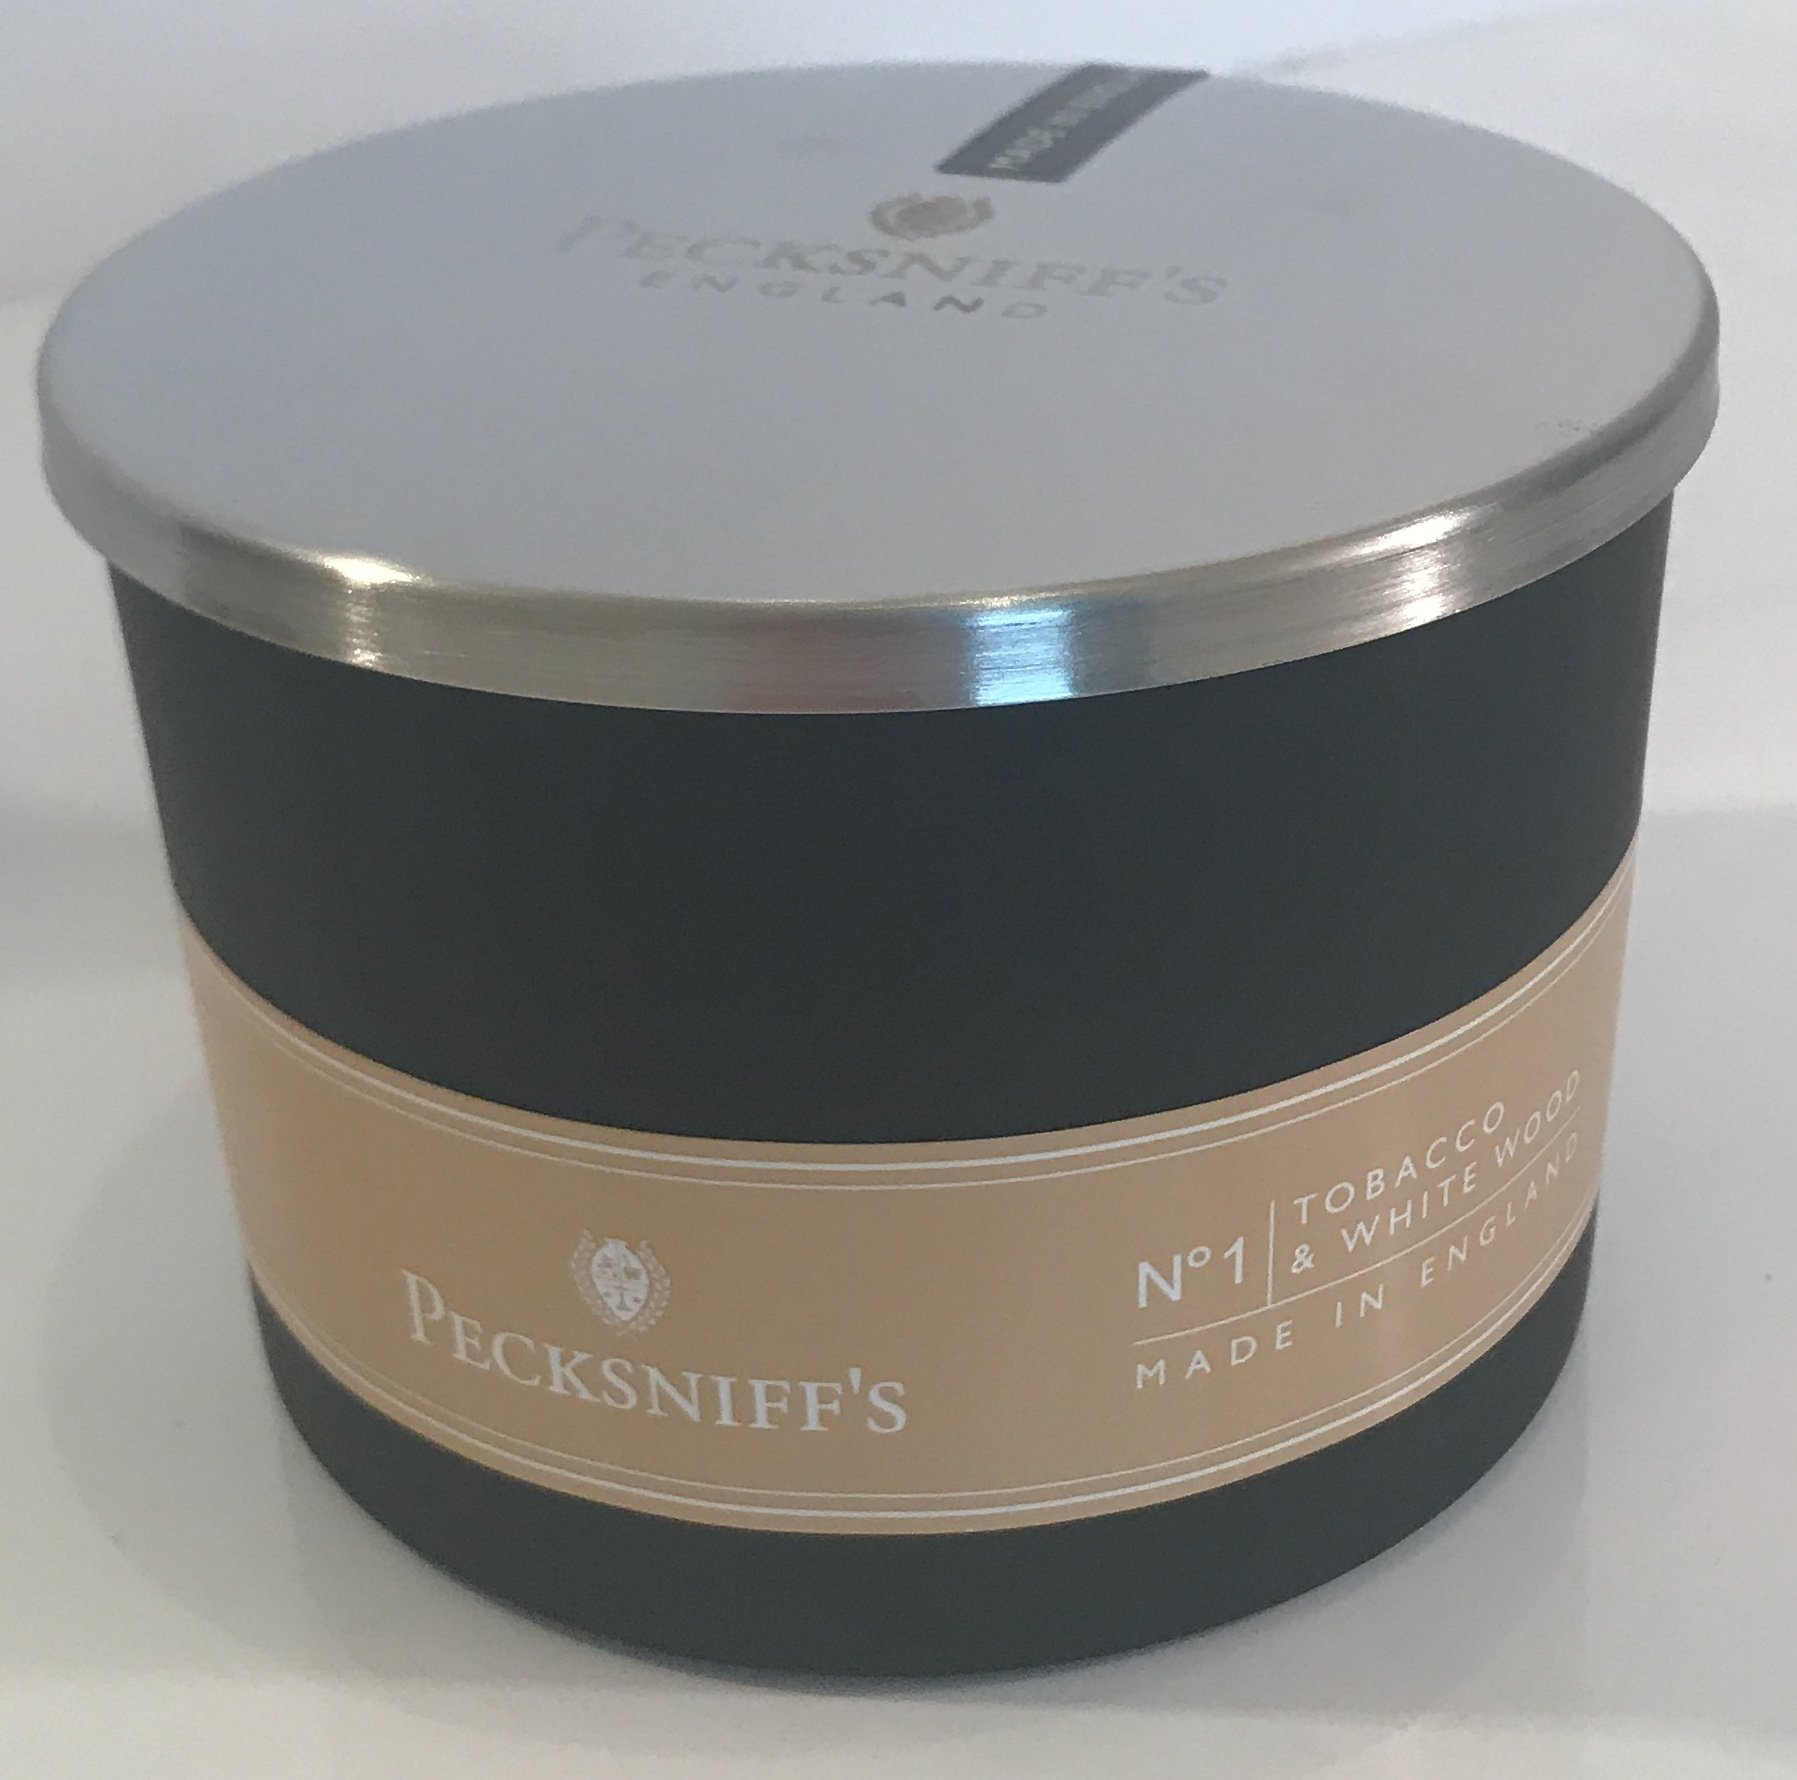 Pecksniffs 8.8OZ 3 Wick Candle - Tobacco & White Woods